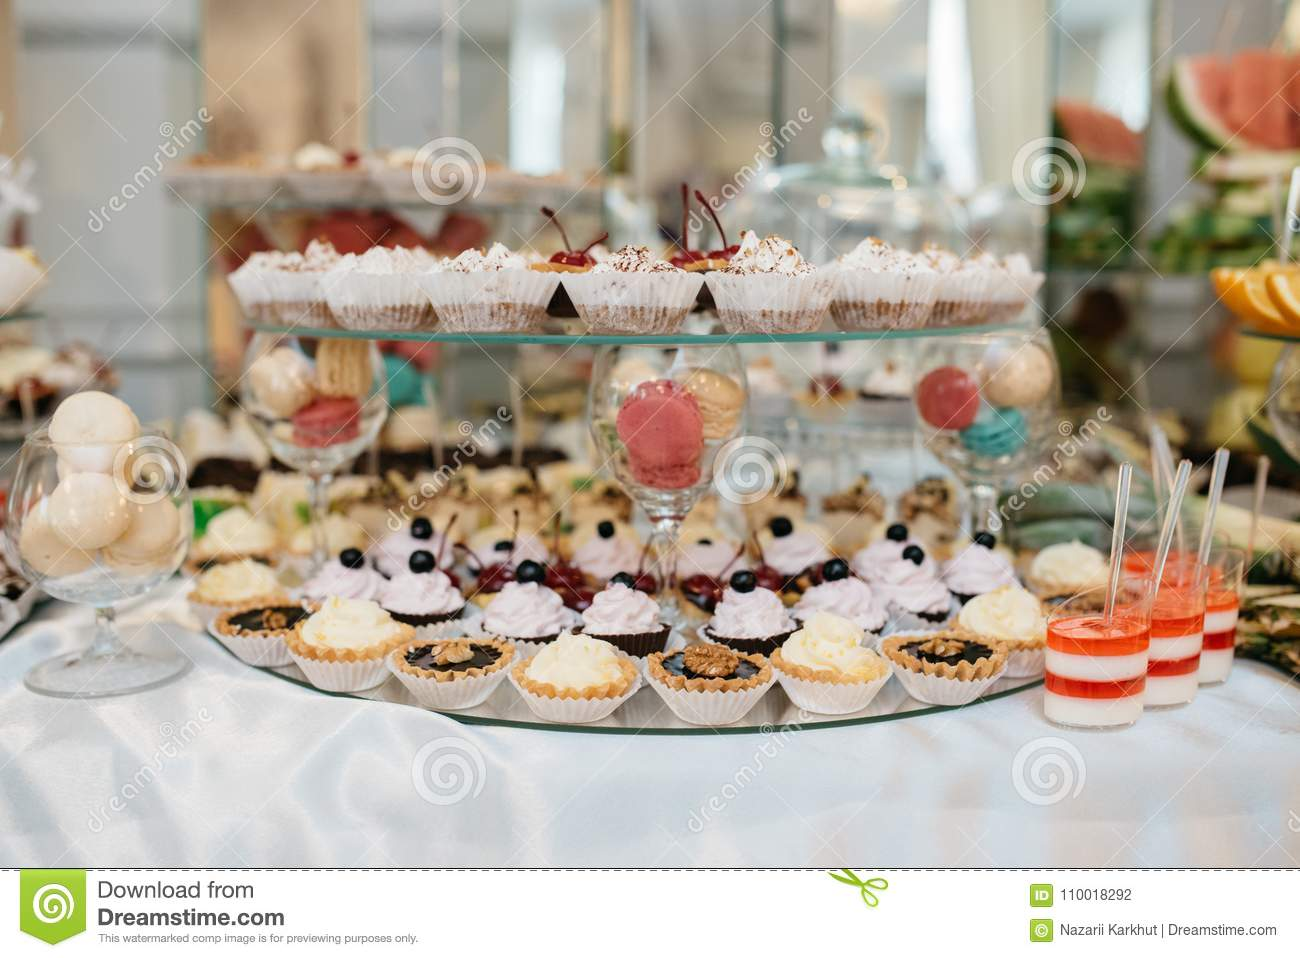 Delicious Decorated Candy Bar Sweets On Tables For Wedding